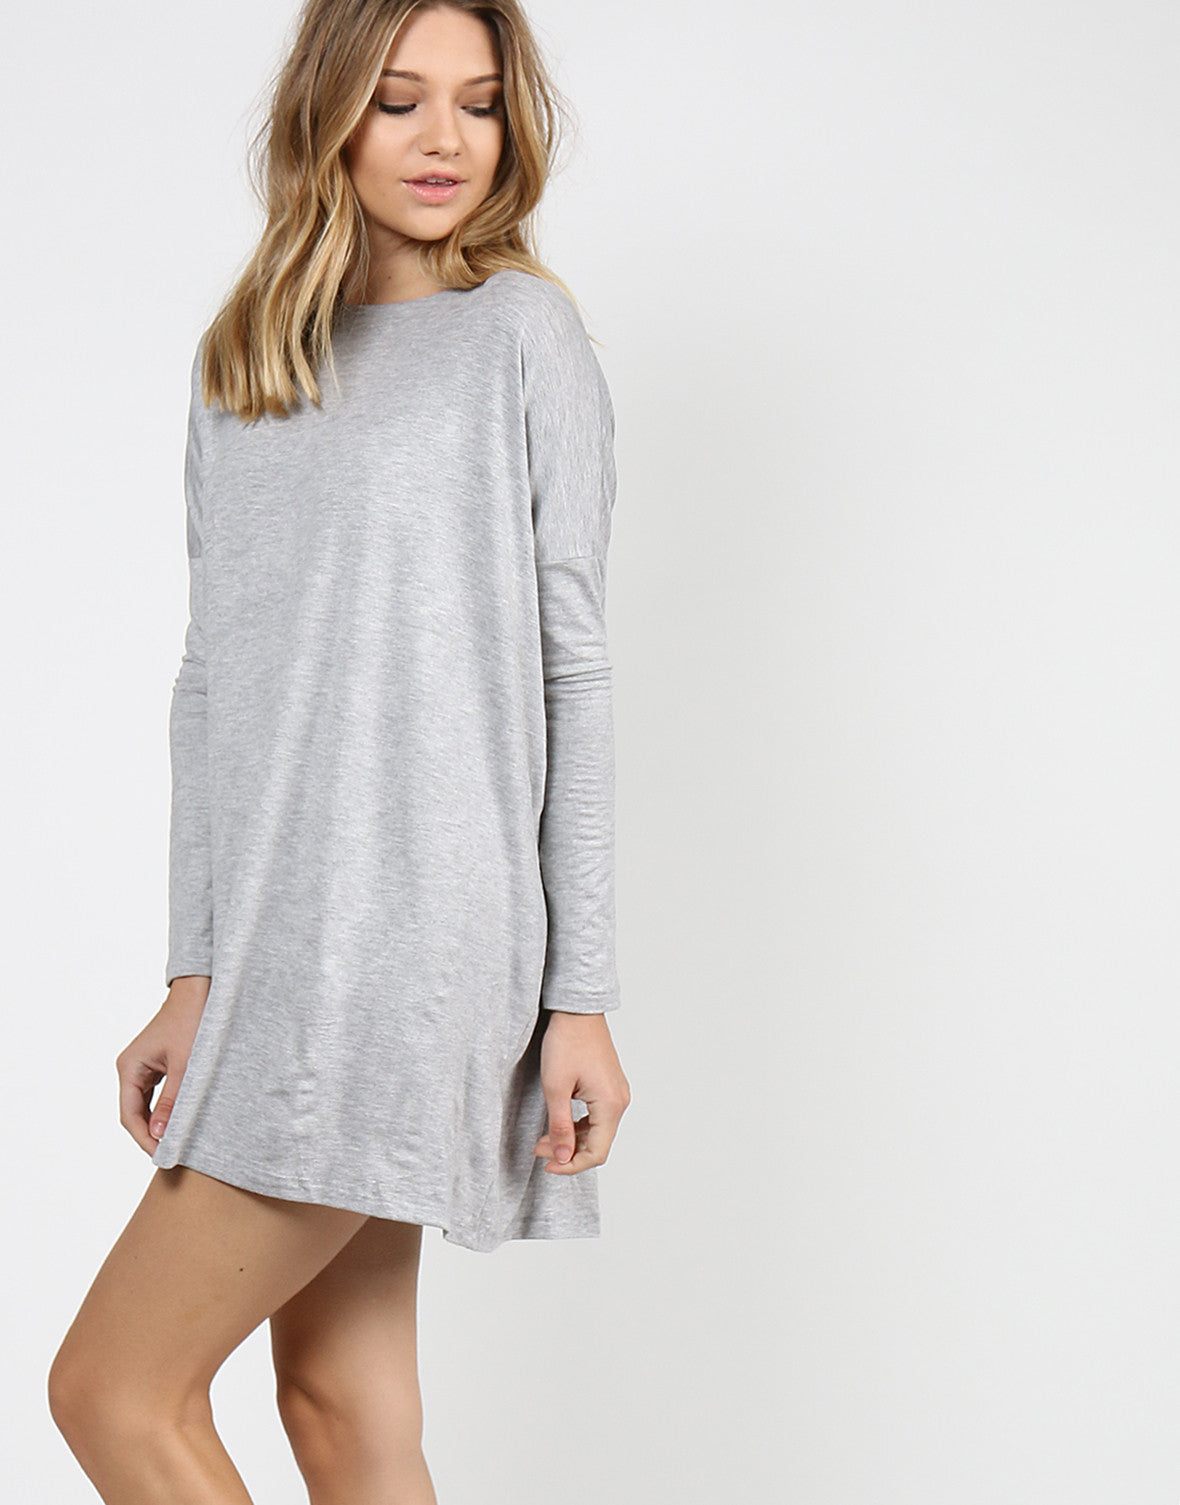 Long Sleeve Shirt Dress - Heather Gray